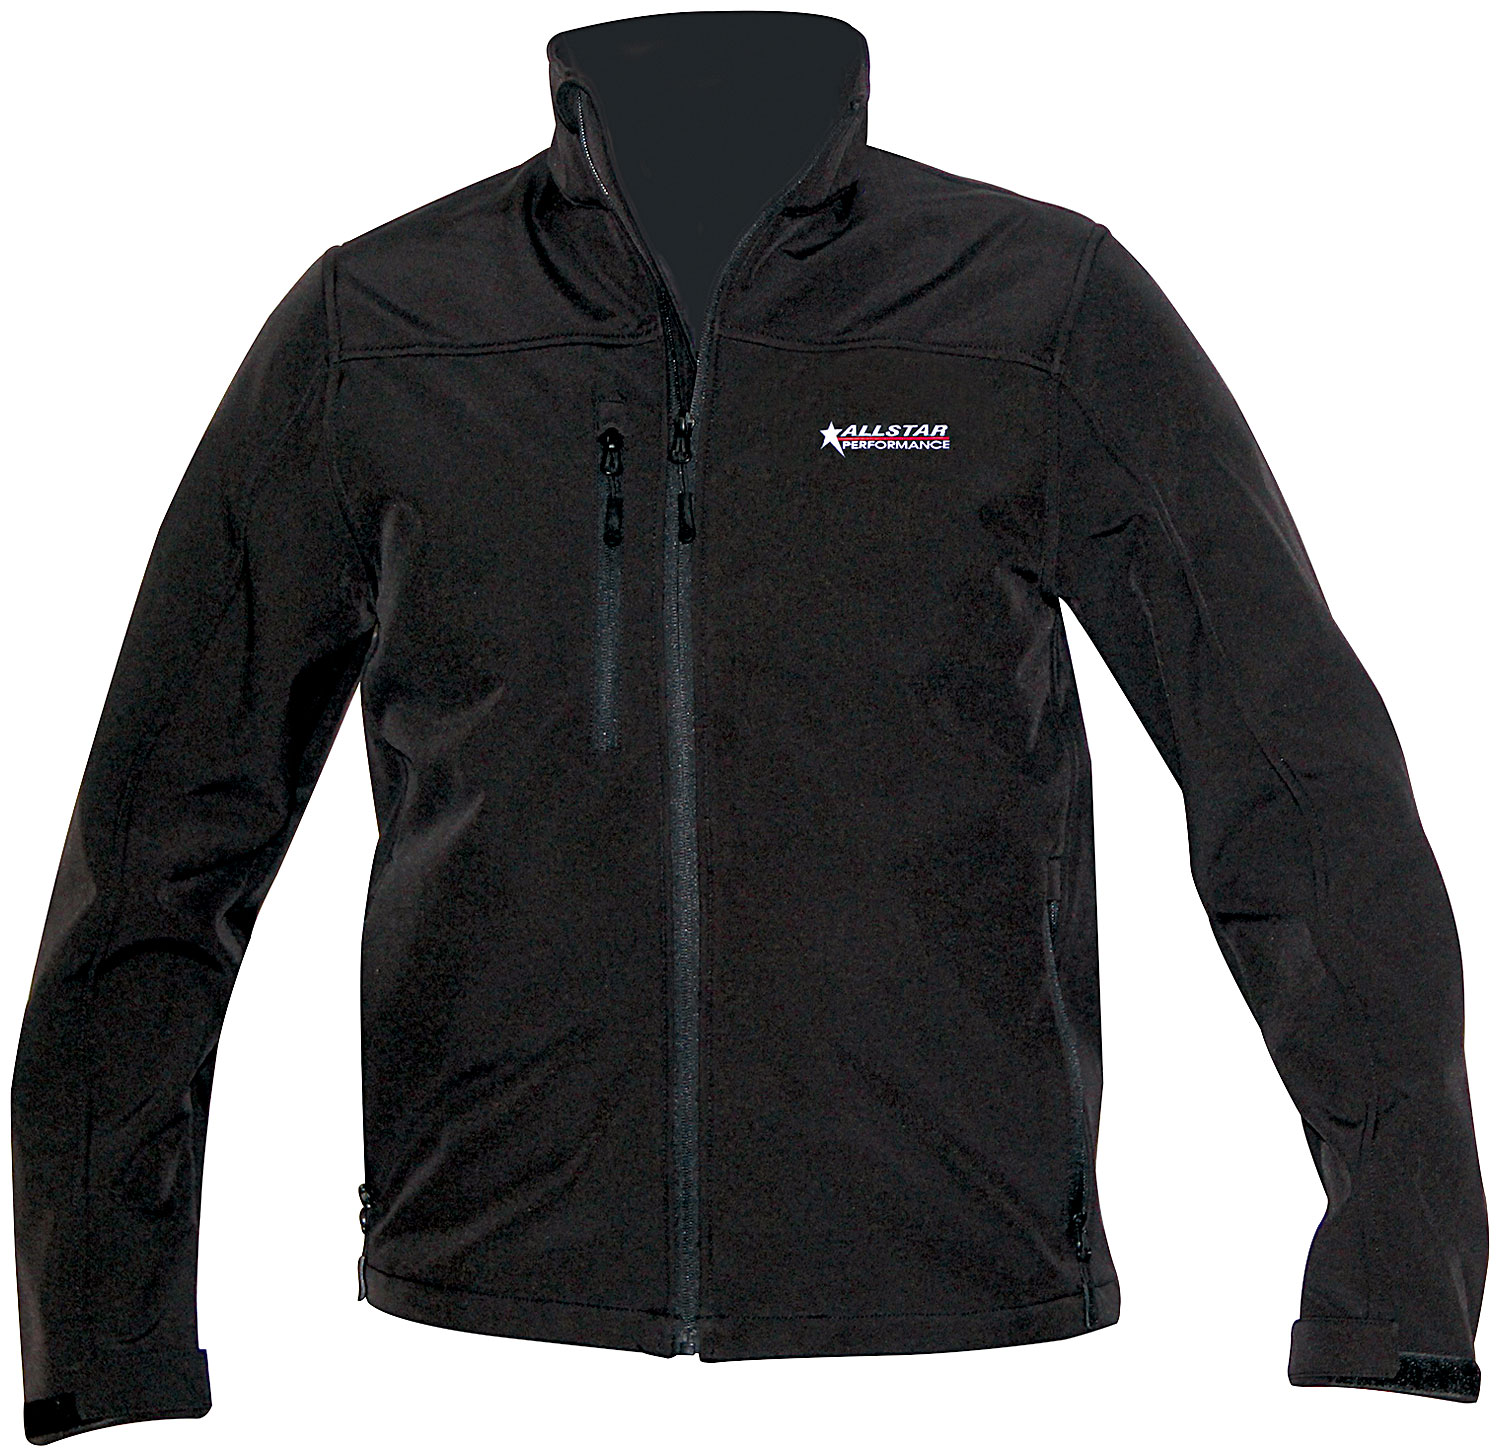 ALLSTAR PERFORMANCE 99918L Allstar Jacket Lightweight Large